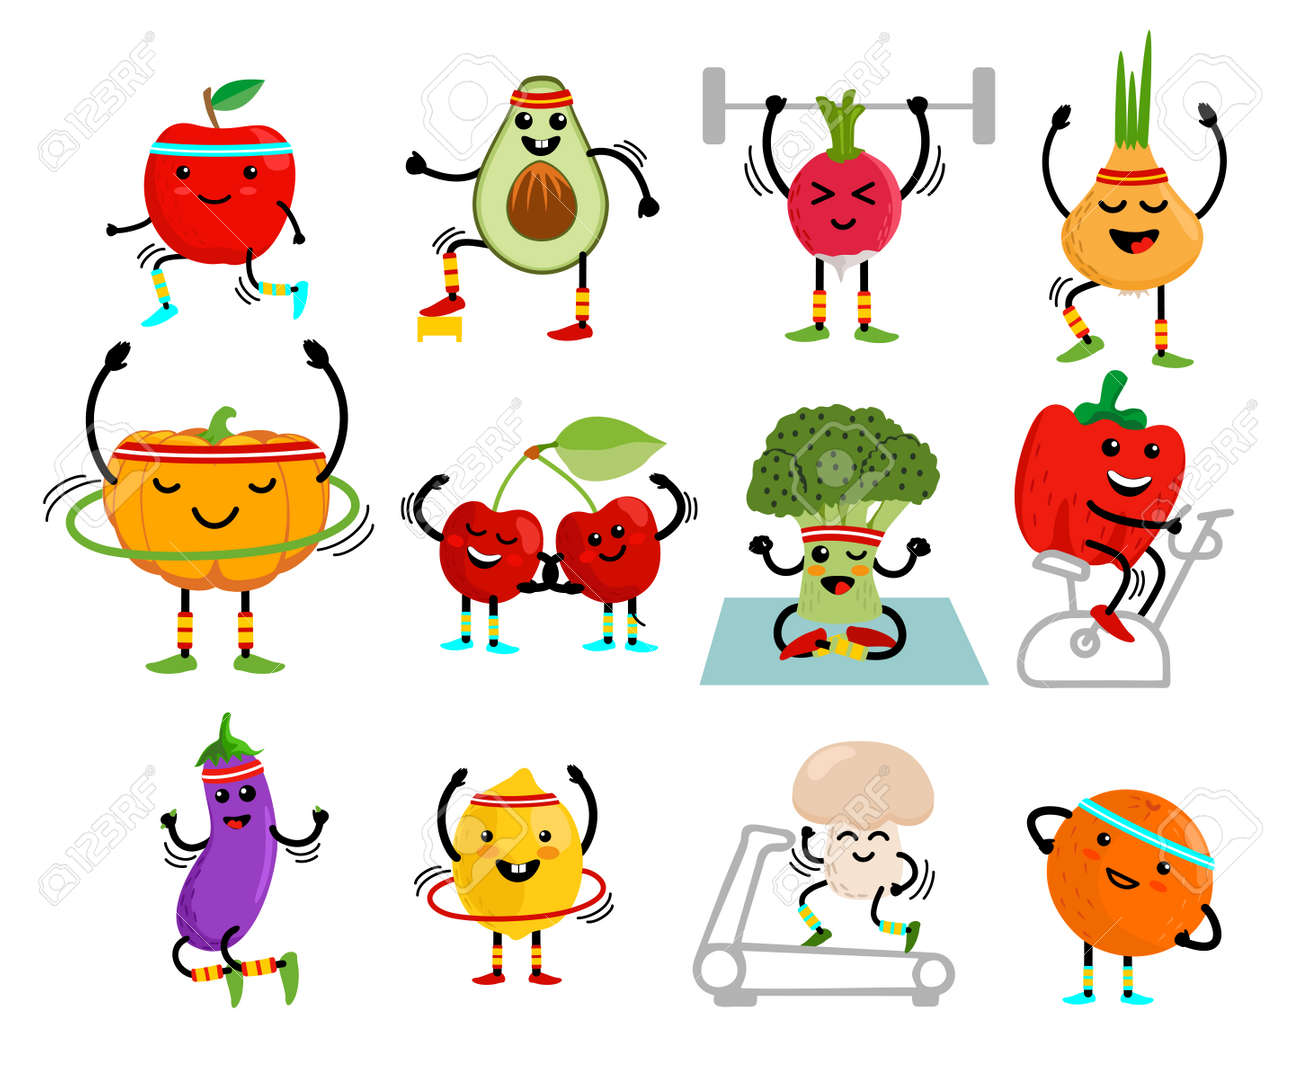 Set of cute fruits and vegetables go in for sports. Fruits and vegetables cartoon characters. Healthy eating and fitness. Cute food cartoon character set. Vector illustration - 169743672